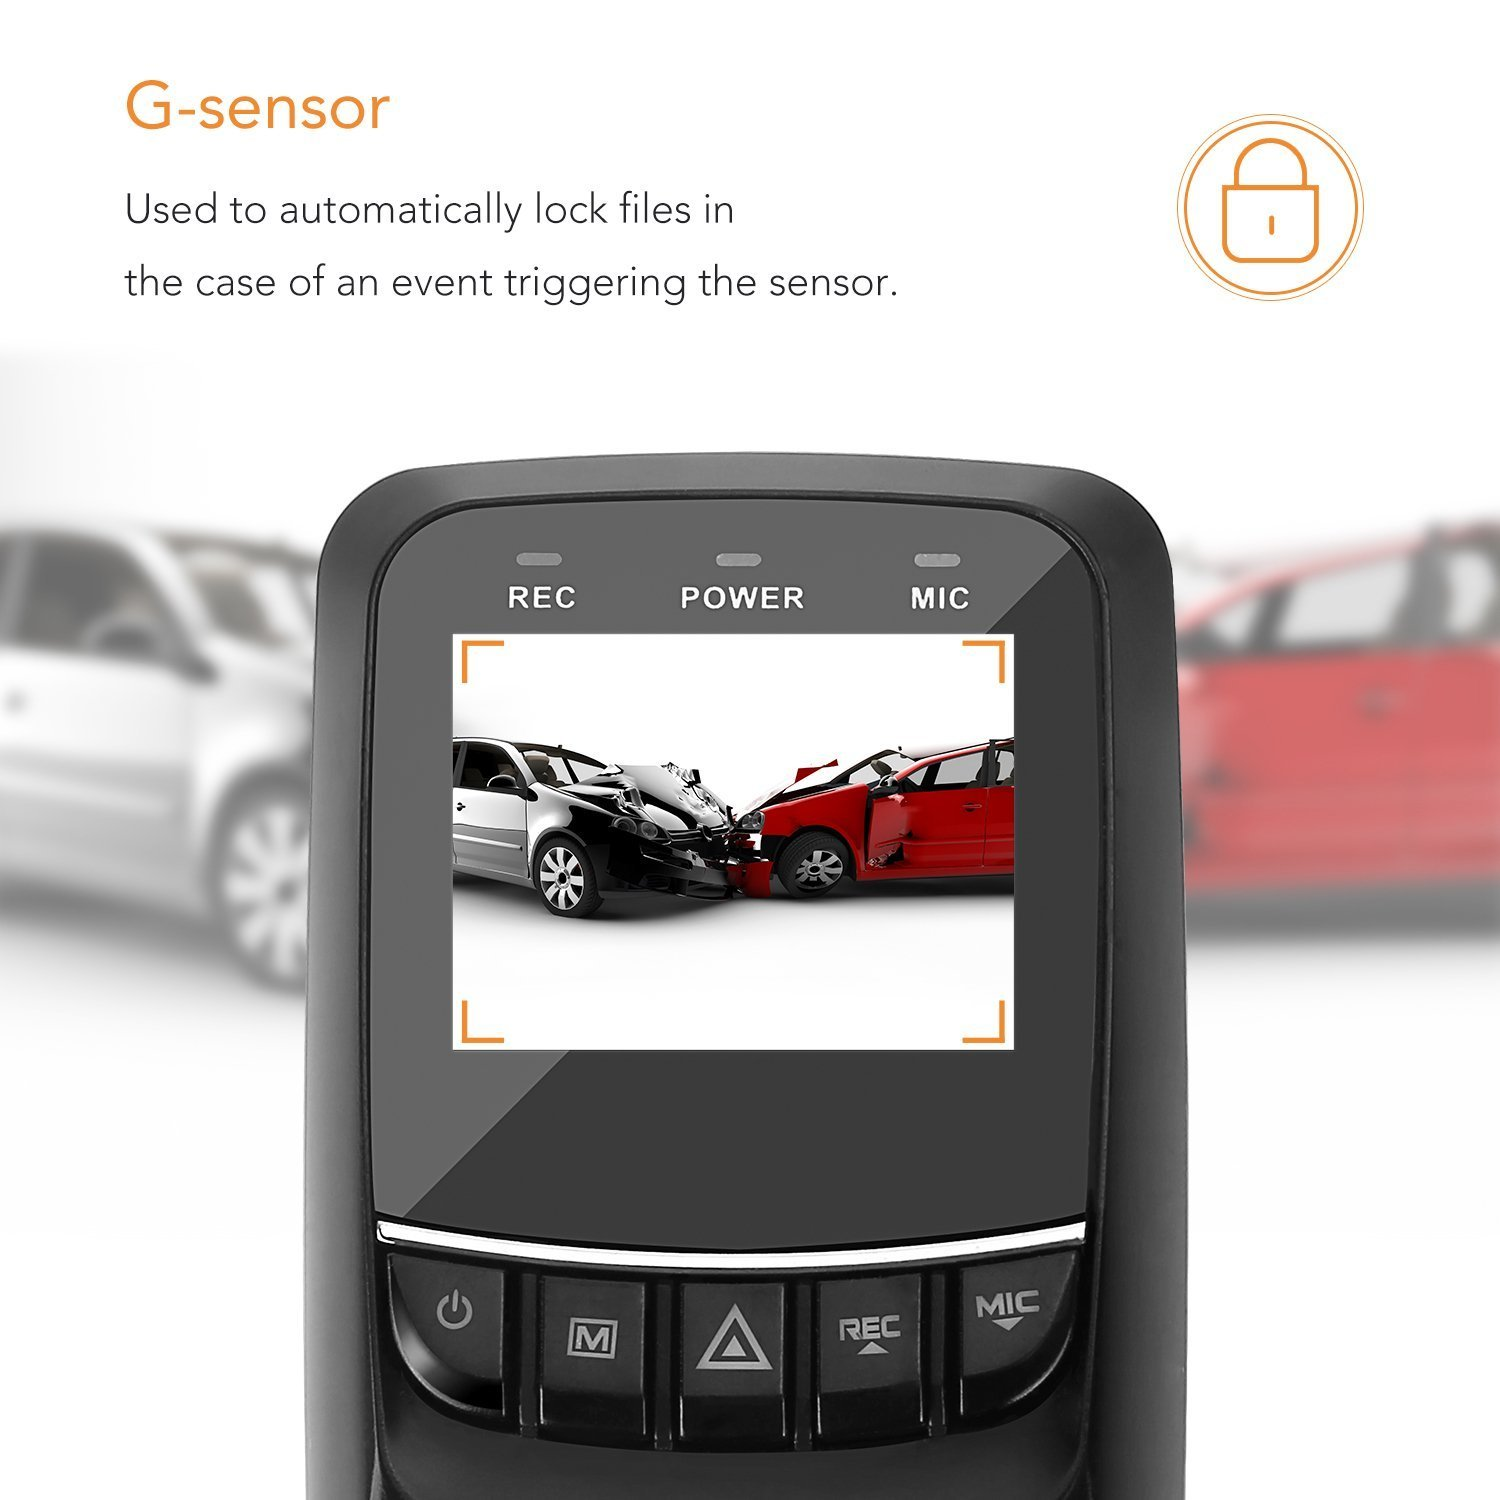 G-Sensor Lian LifeStyle Car Dash Cam 1.5 LCD FHD 1920p 170 Degree Wide Angle Dashboard Camera Recorder with Sony IMX323 Video Sensor WDR Loop Recording+16GB SD LY550S LLSLY LLSLY550S